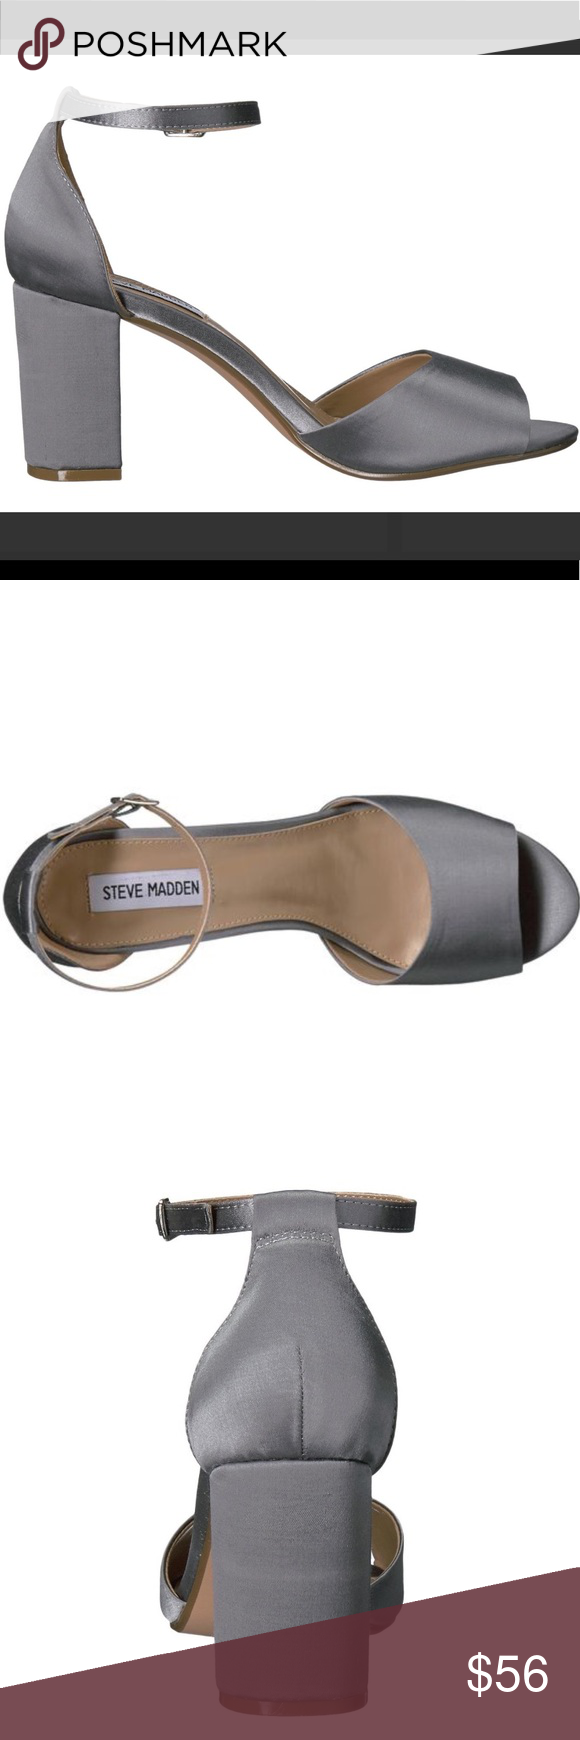 c80f3416908 Steve Madden mirna satin blue gray block heel Brand new without box. Sizes  available